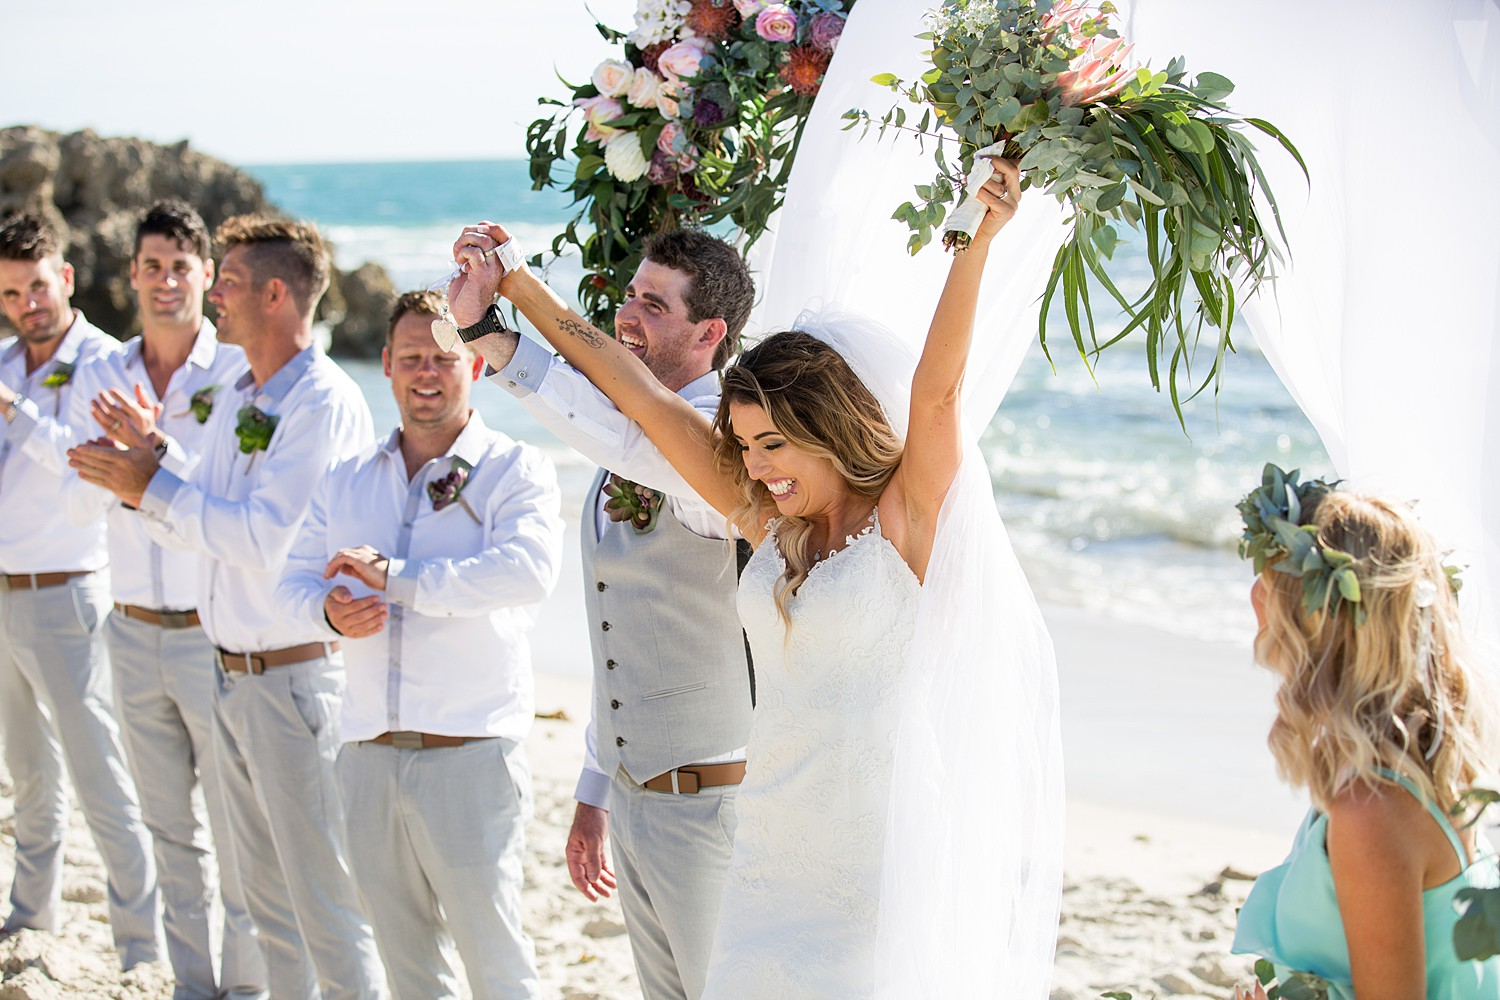 trigg_beach_wedding_perth (49).jpg